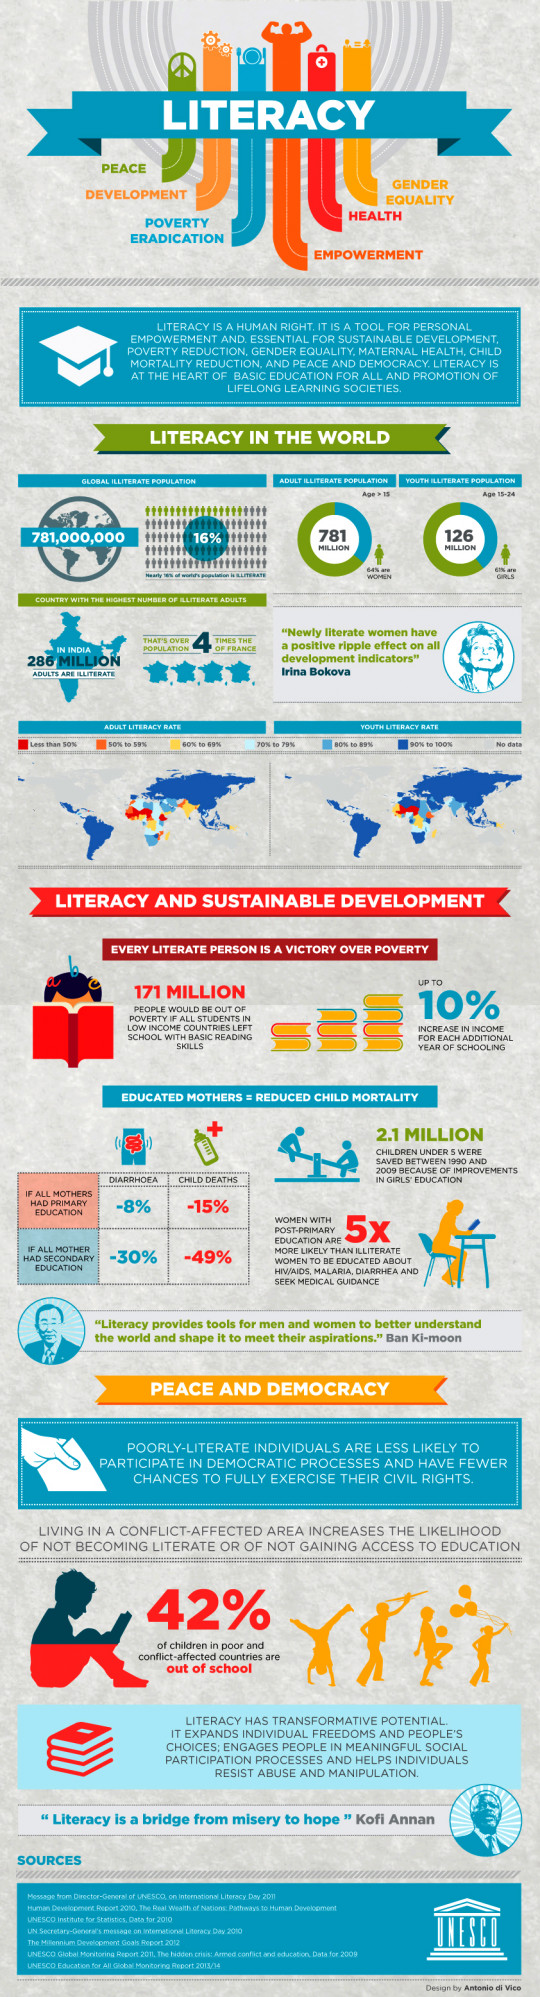 Literacy for Sustainable Development